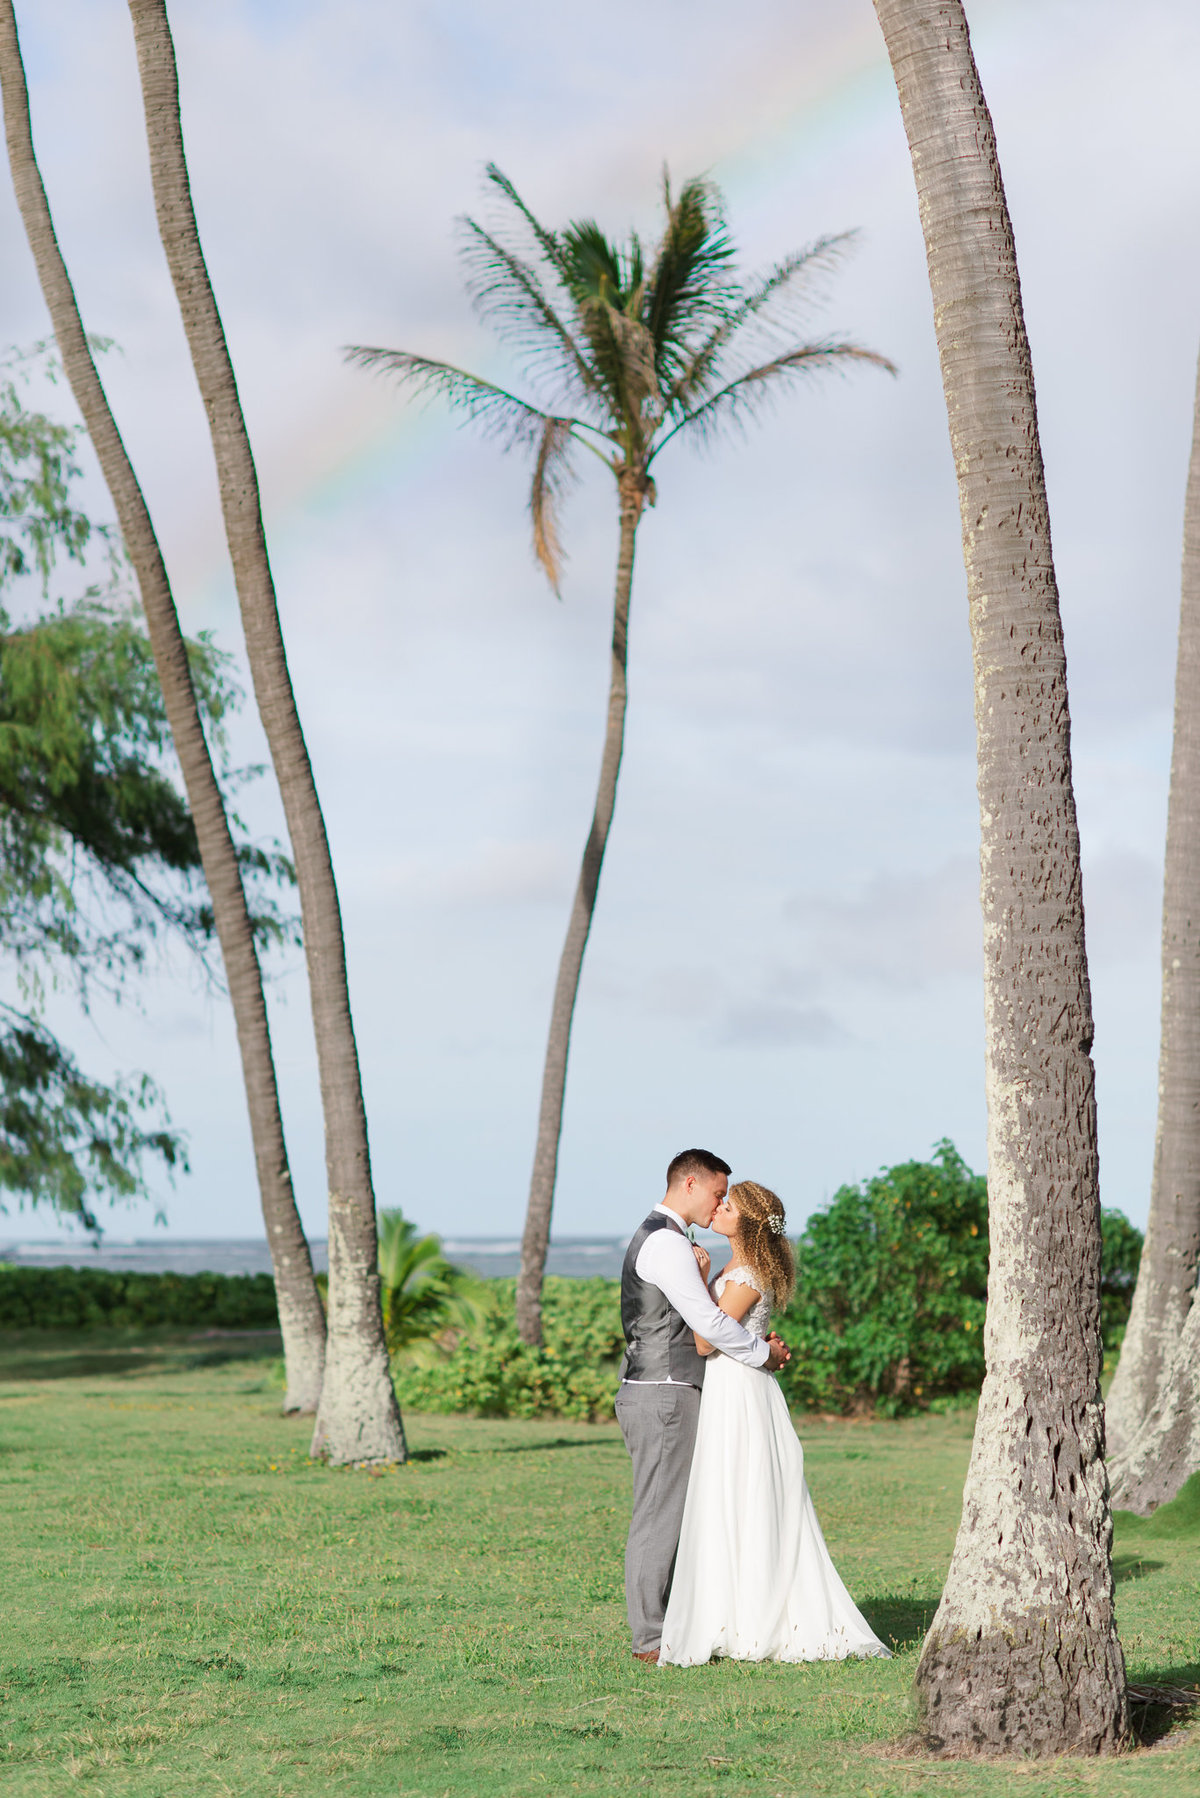 Hawaii Oahu Bride Wedding Film Elopement Photographer-7-1